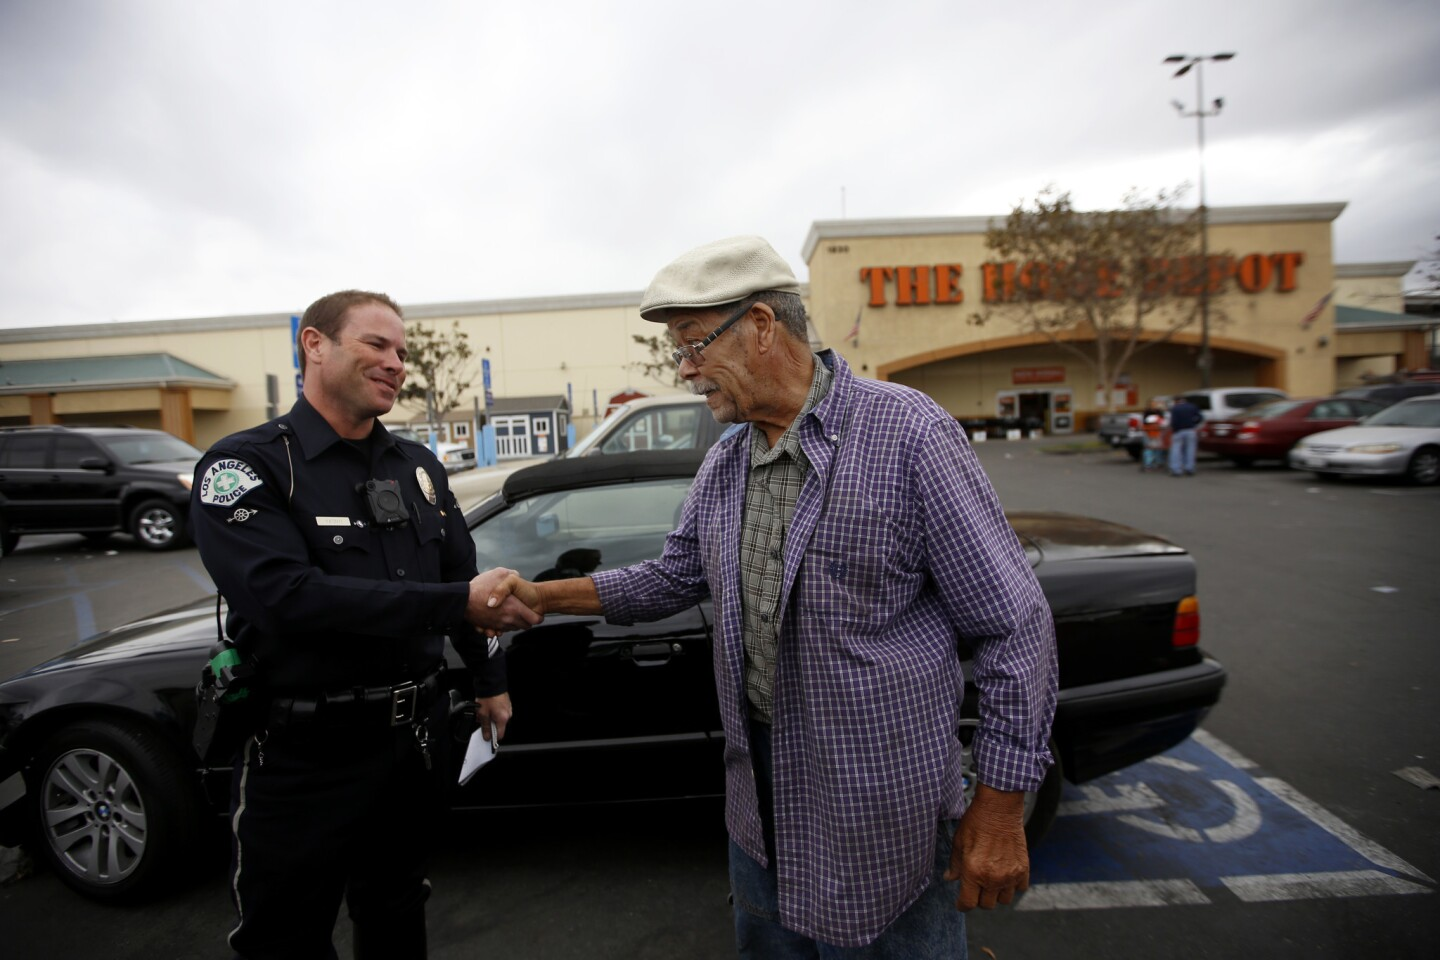 L.A. police Officer Ben Yasnyi, left, greets E. Lagemann, 80, after checking the motorist's disabled placard in a parking lot in South Los Angeles.